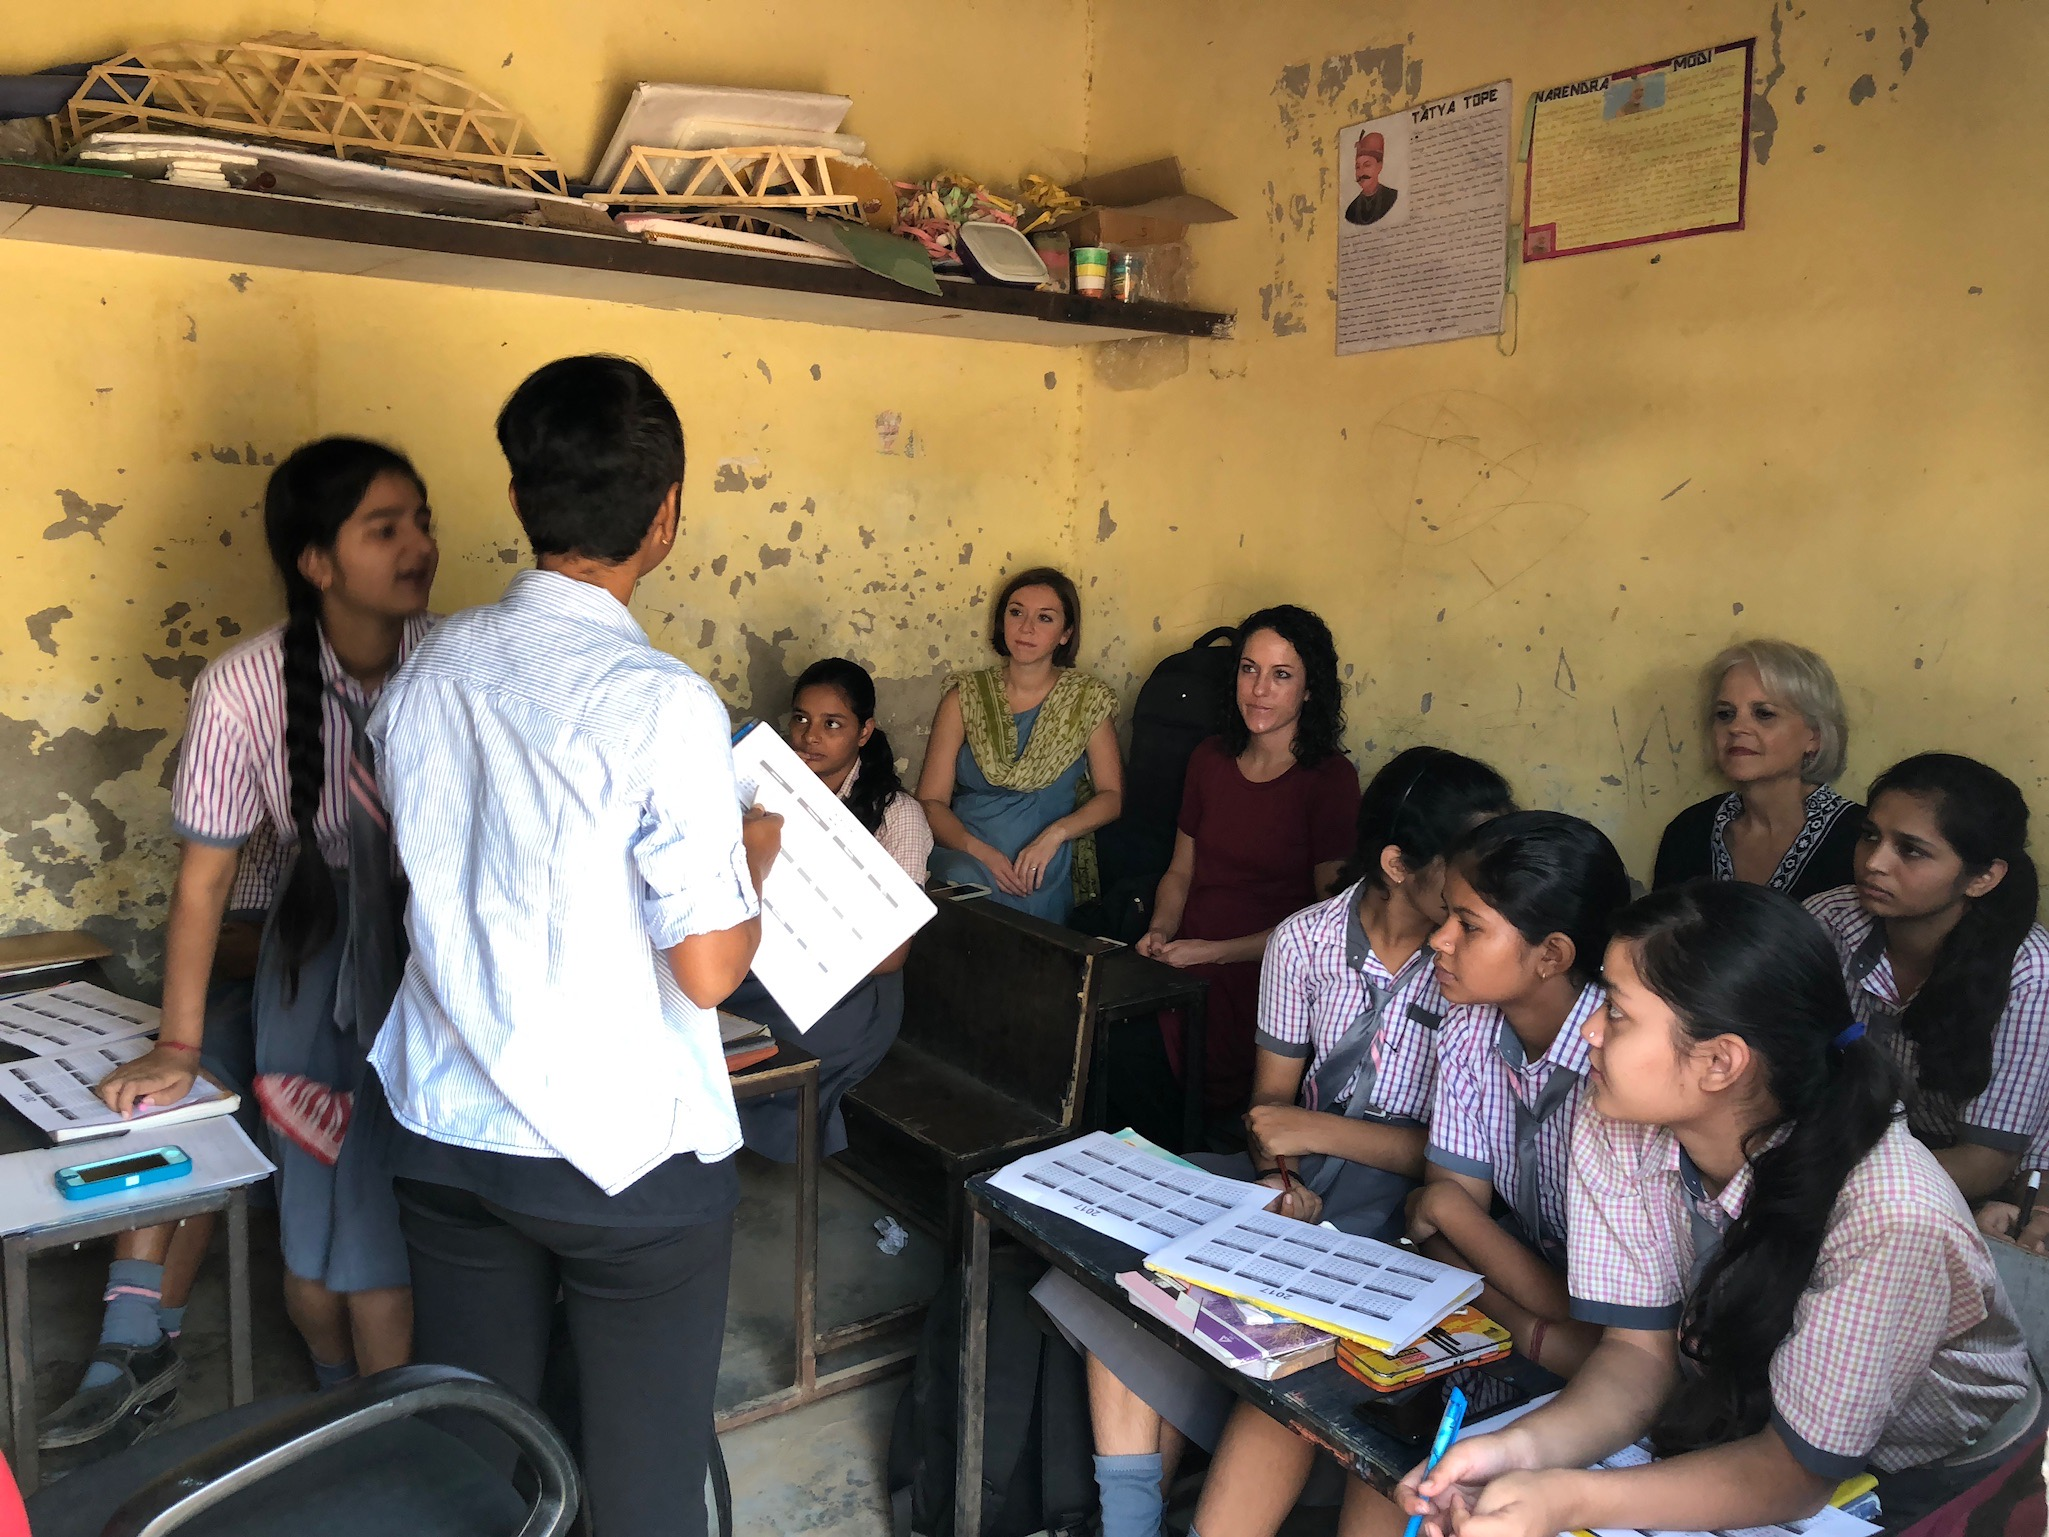 Girls Class takes place in one of the classrooms at APS, and is taught by Sneha Purti, a cooperative for G.O.D. India.